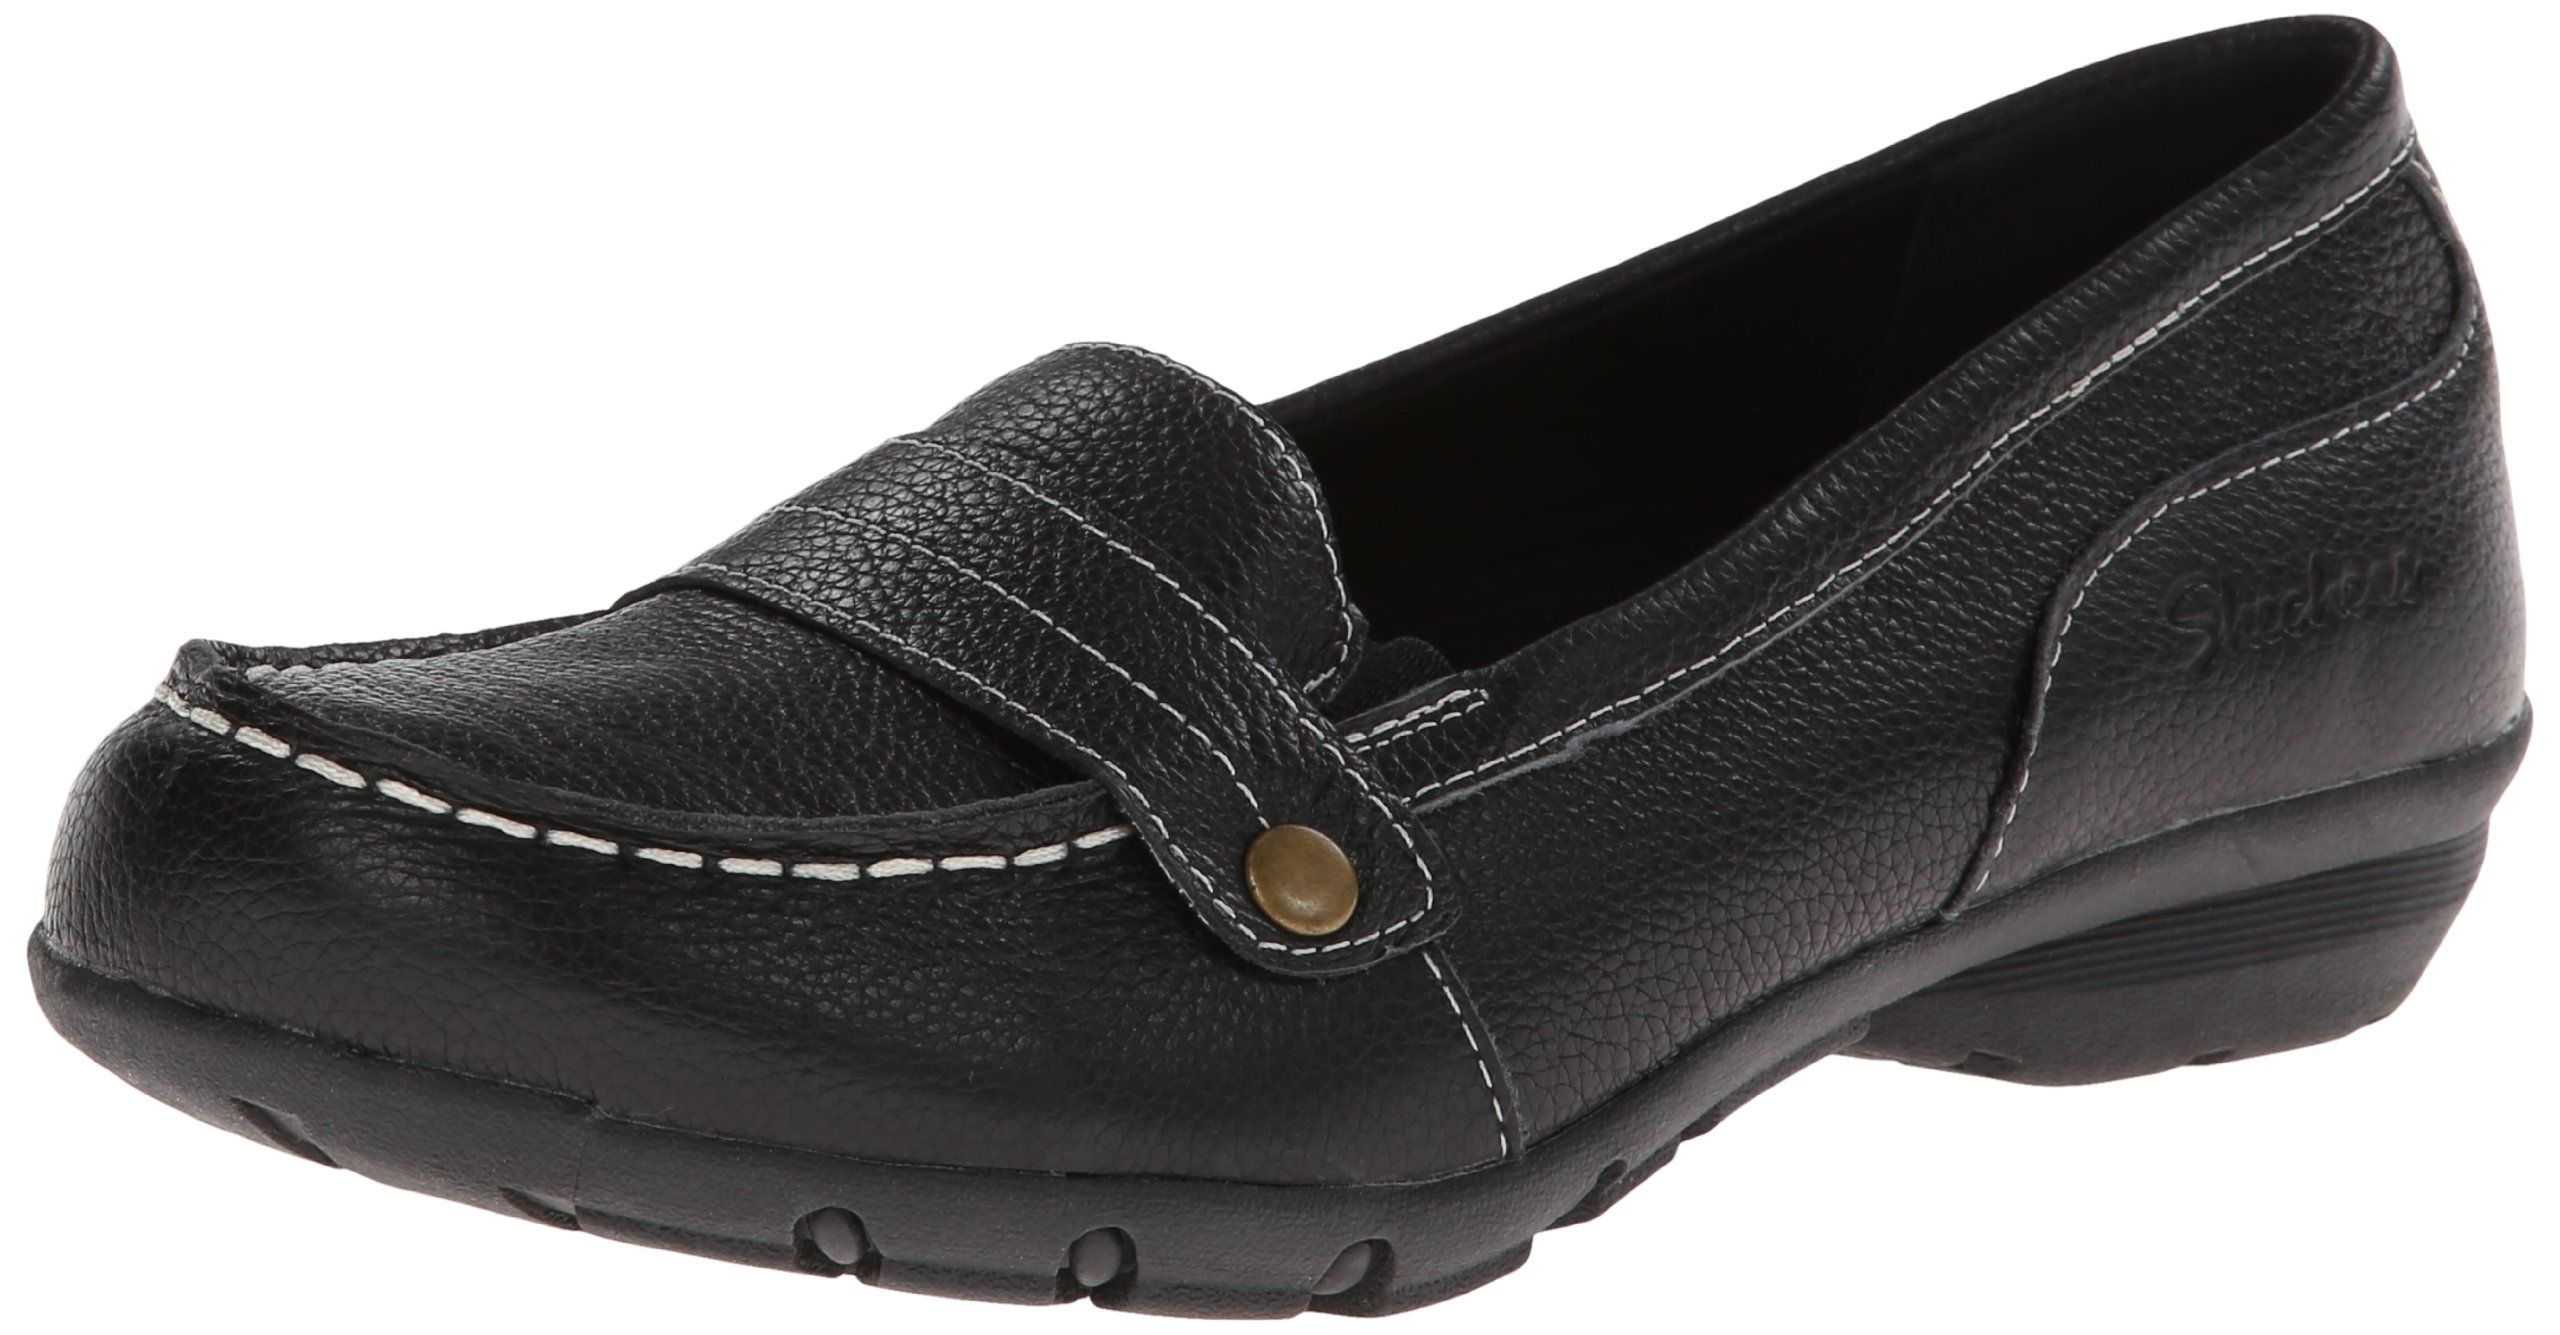 Amazon.com  Skechers Relaxed Fit Career Womens Comfort Loafers  Shoes e48a9530d0